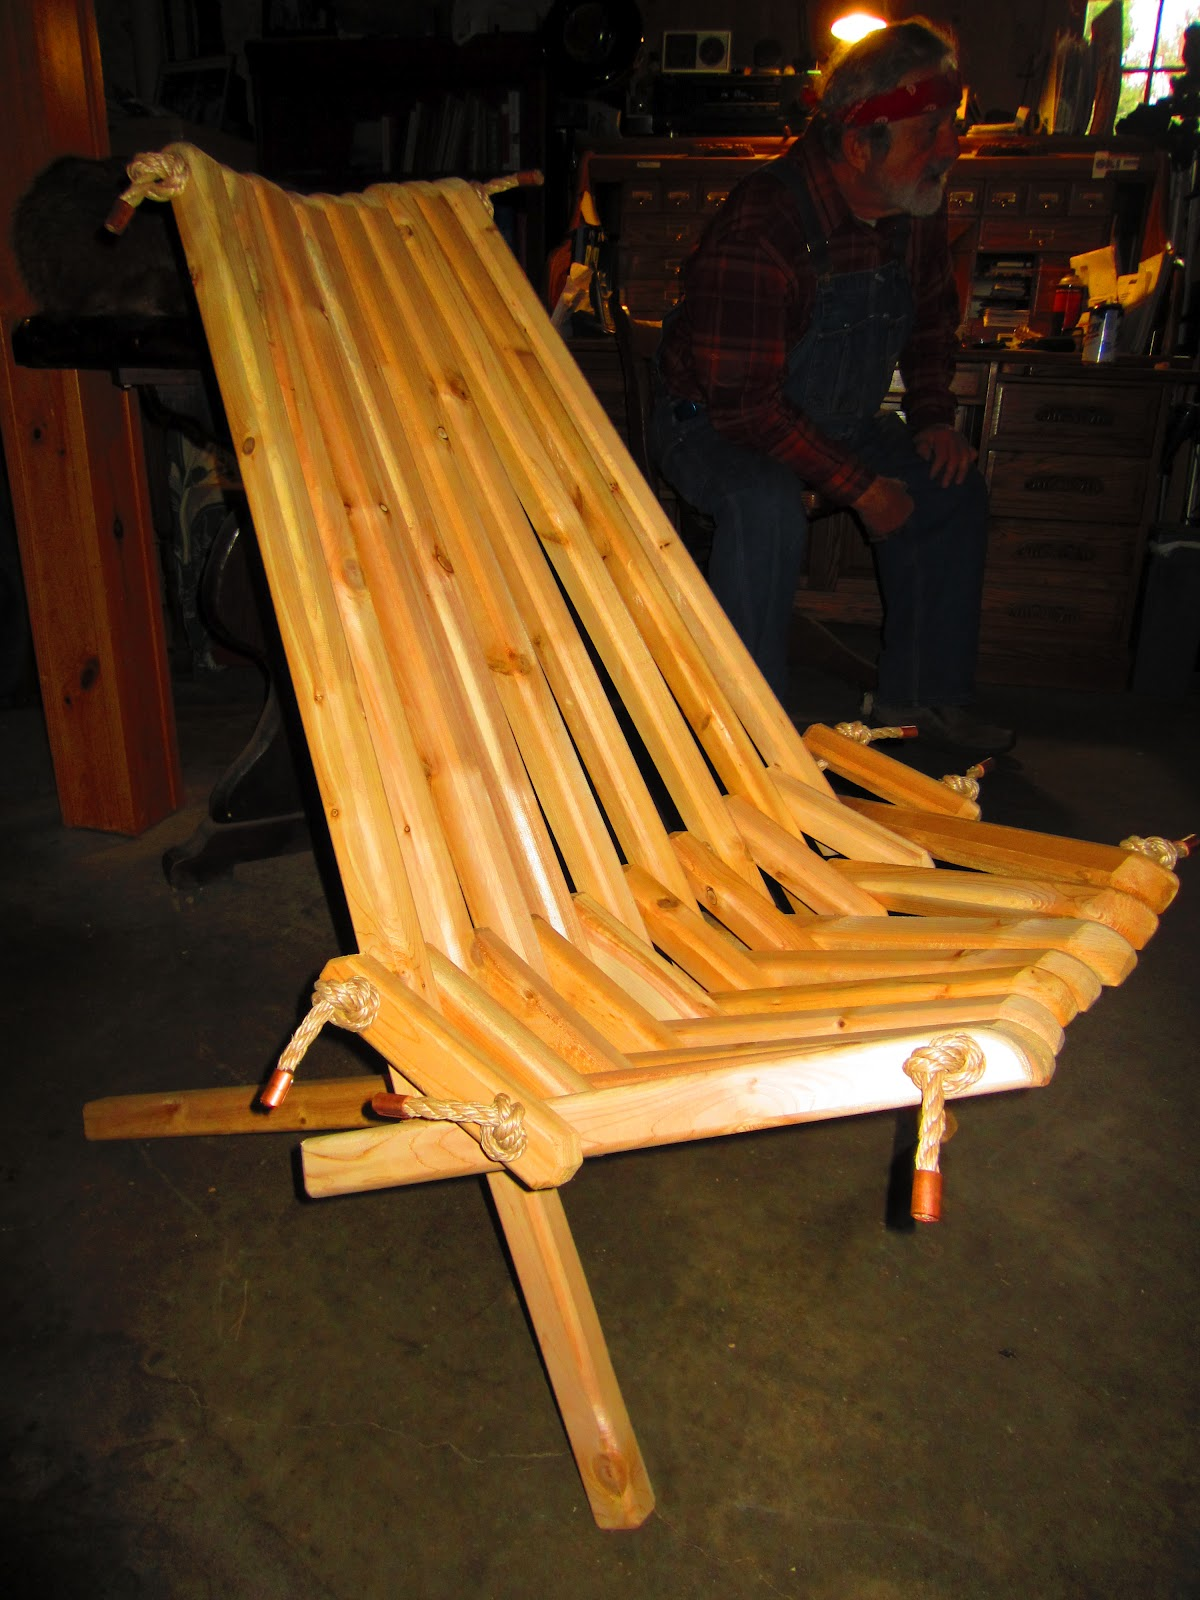 Folding adirondack chair pattern - Patterns for adirondack chairs ...